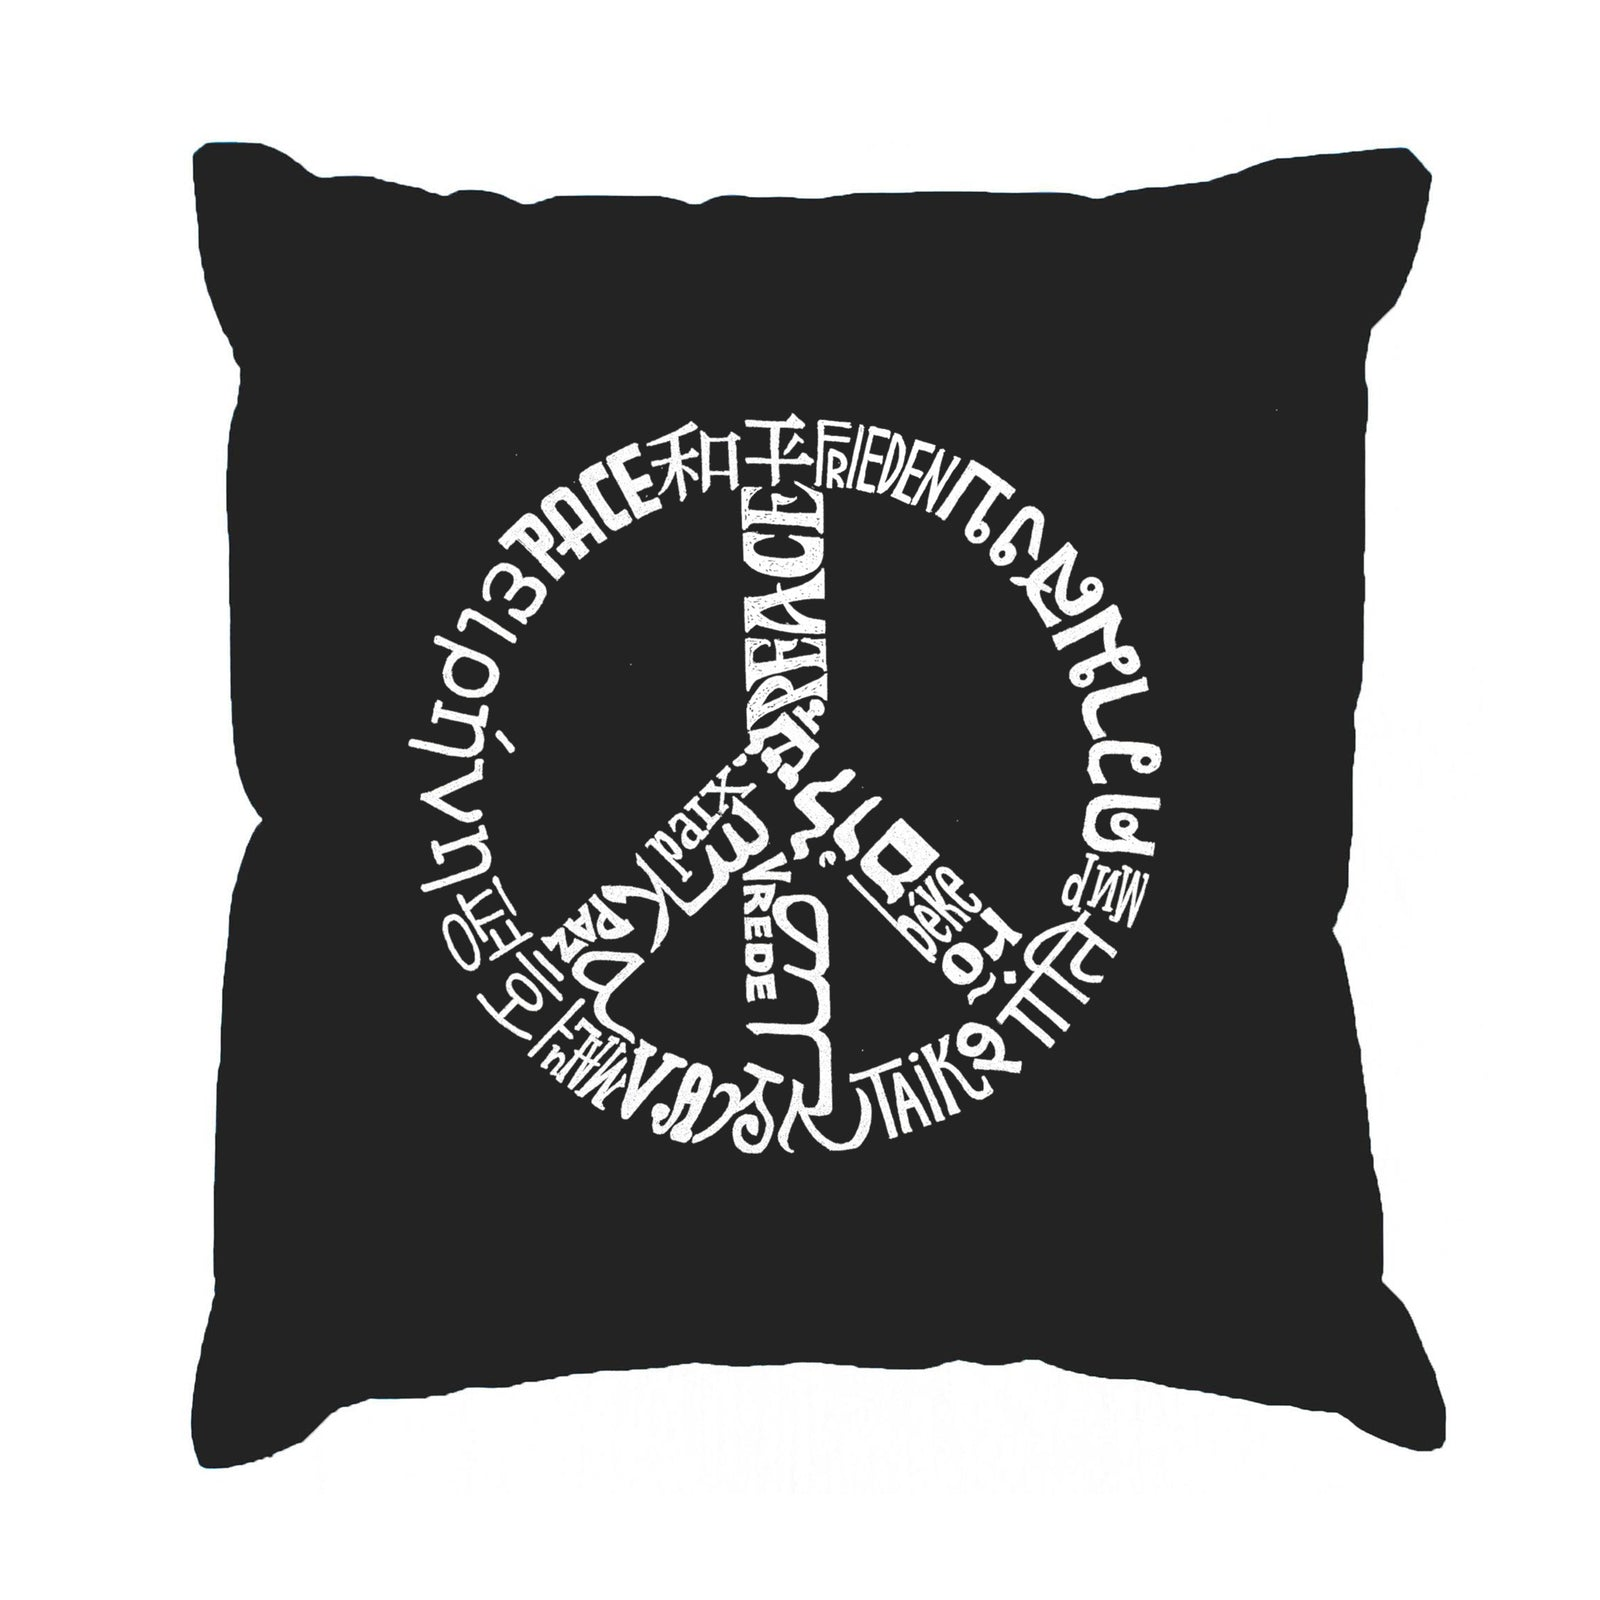 Throw Pillow Cover - EVERY MAJOR WORLD CONFLICT SINCE 1770